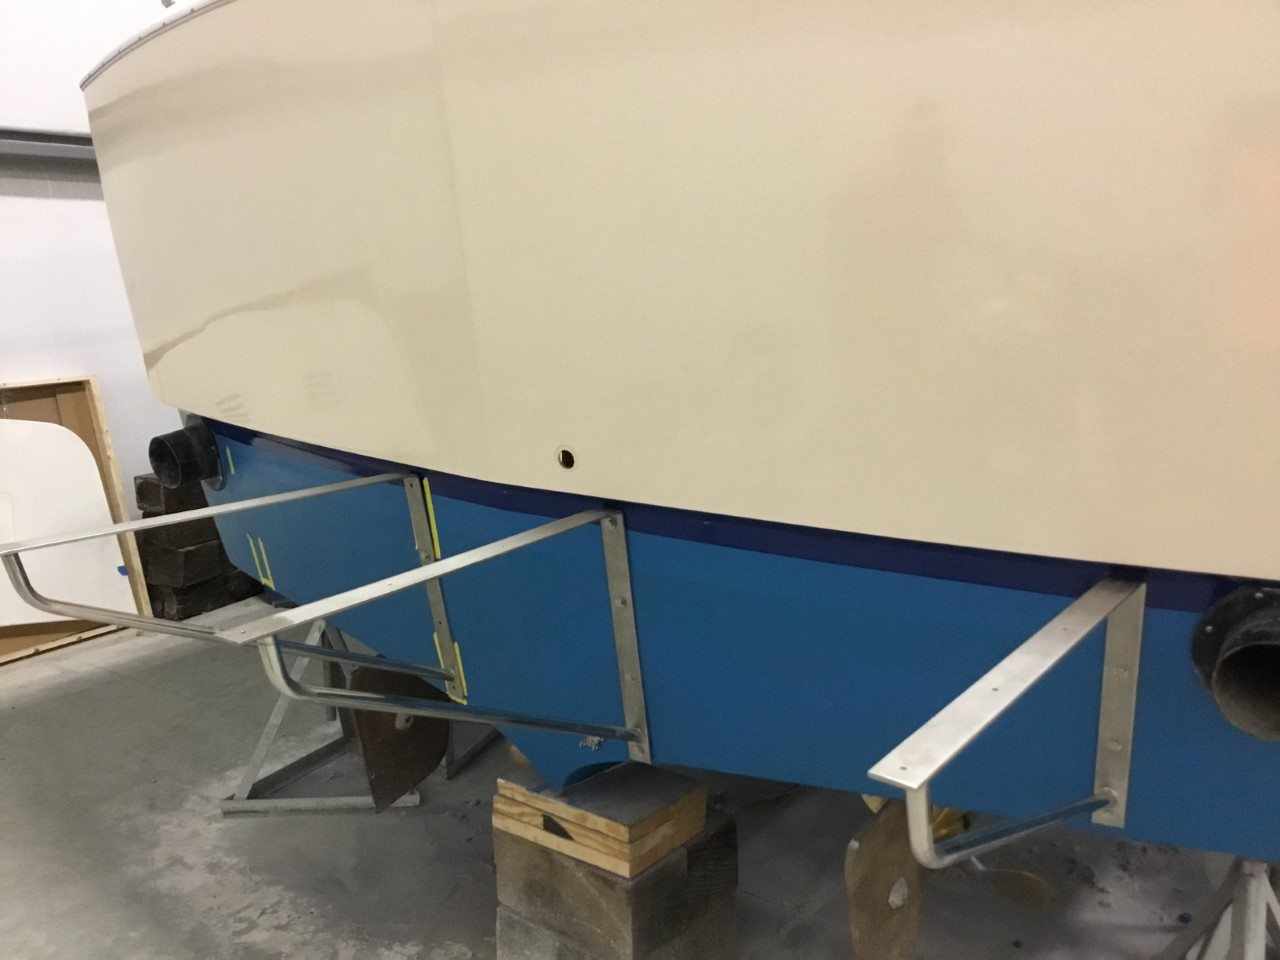 Deluxe-Support-Brackets-Mounted